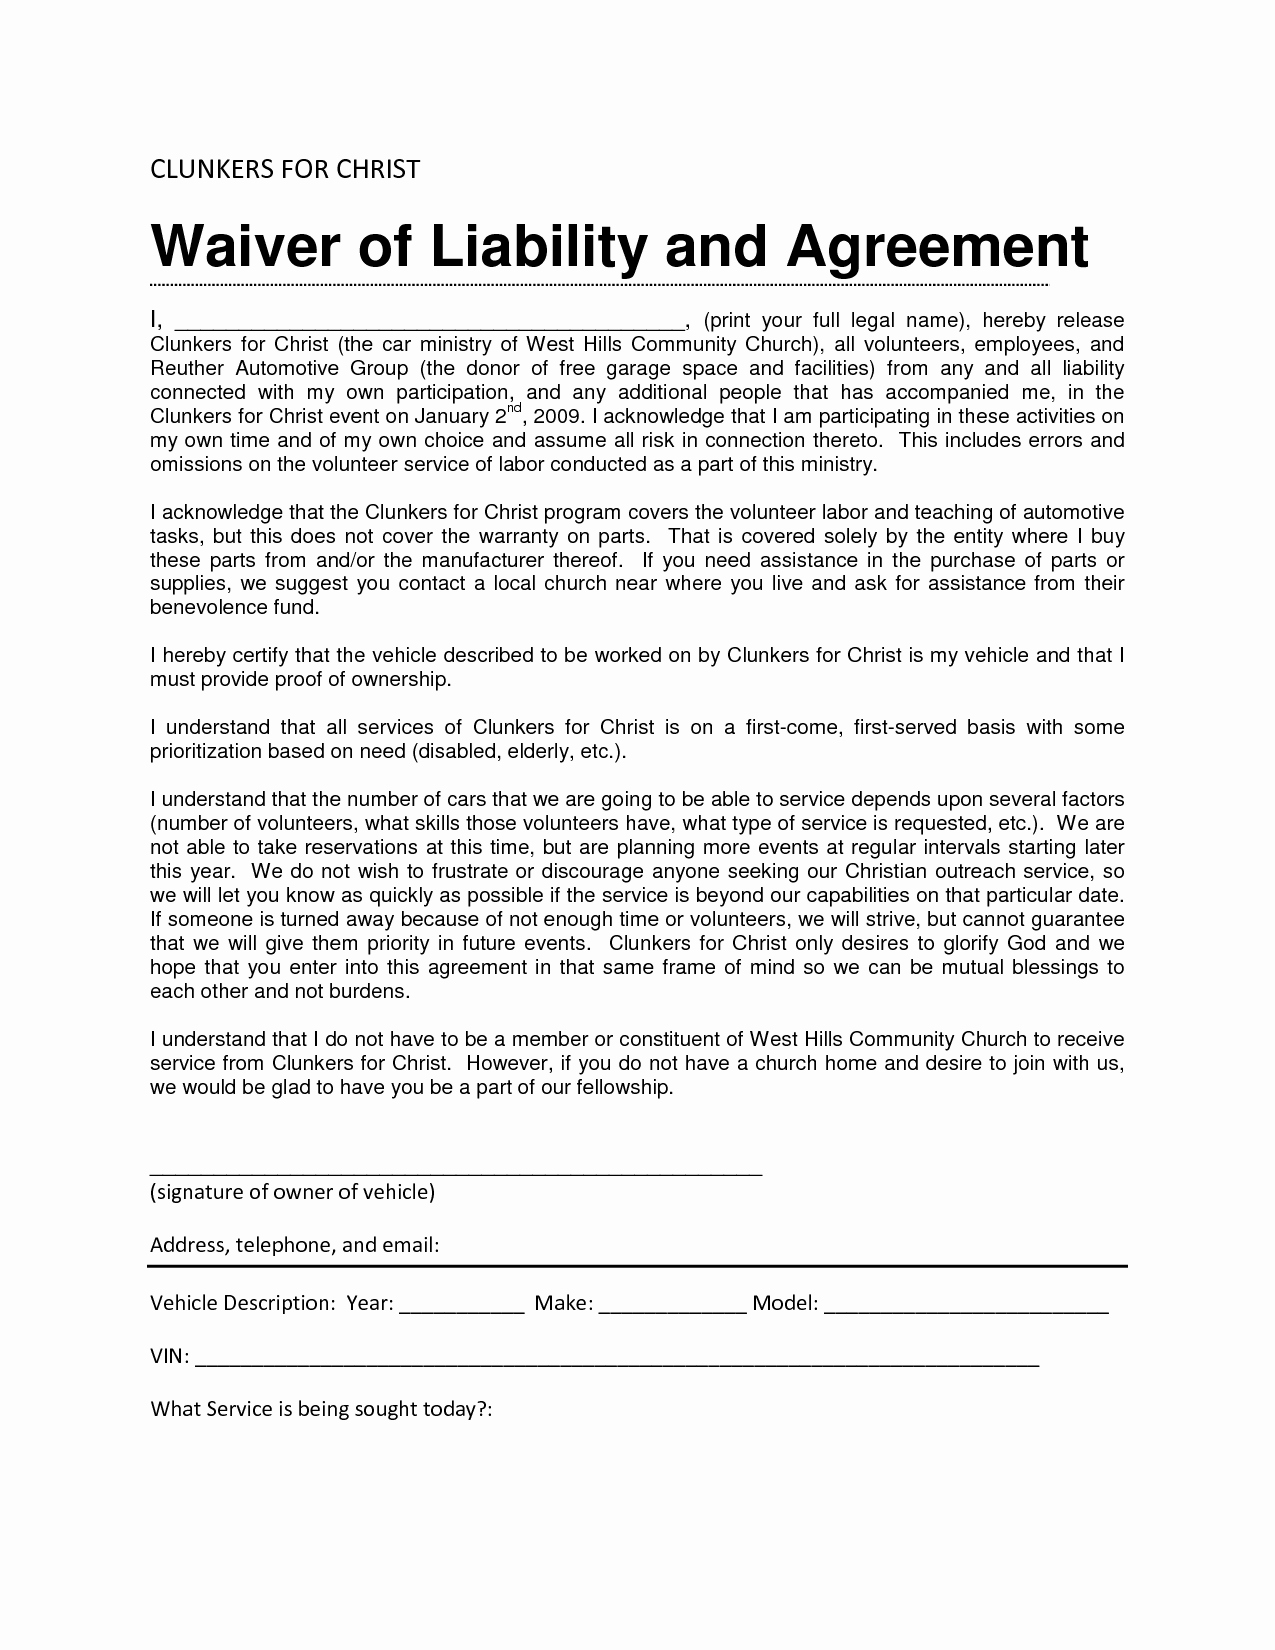 Release Of Liability Template Free Beautiful Liability Waiver Sample Bamboodownunder